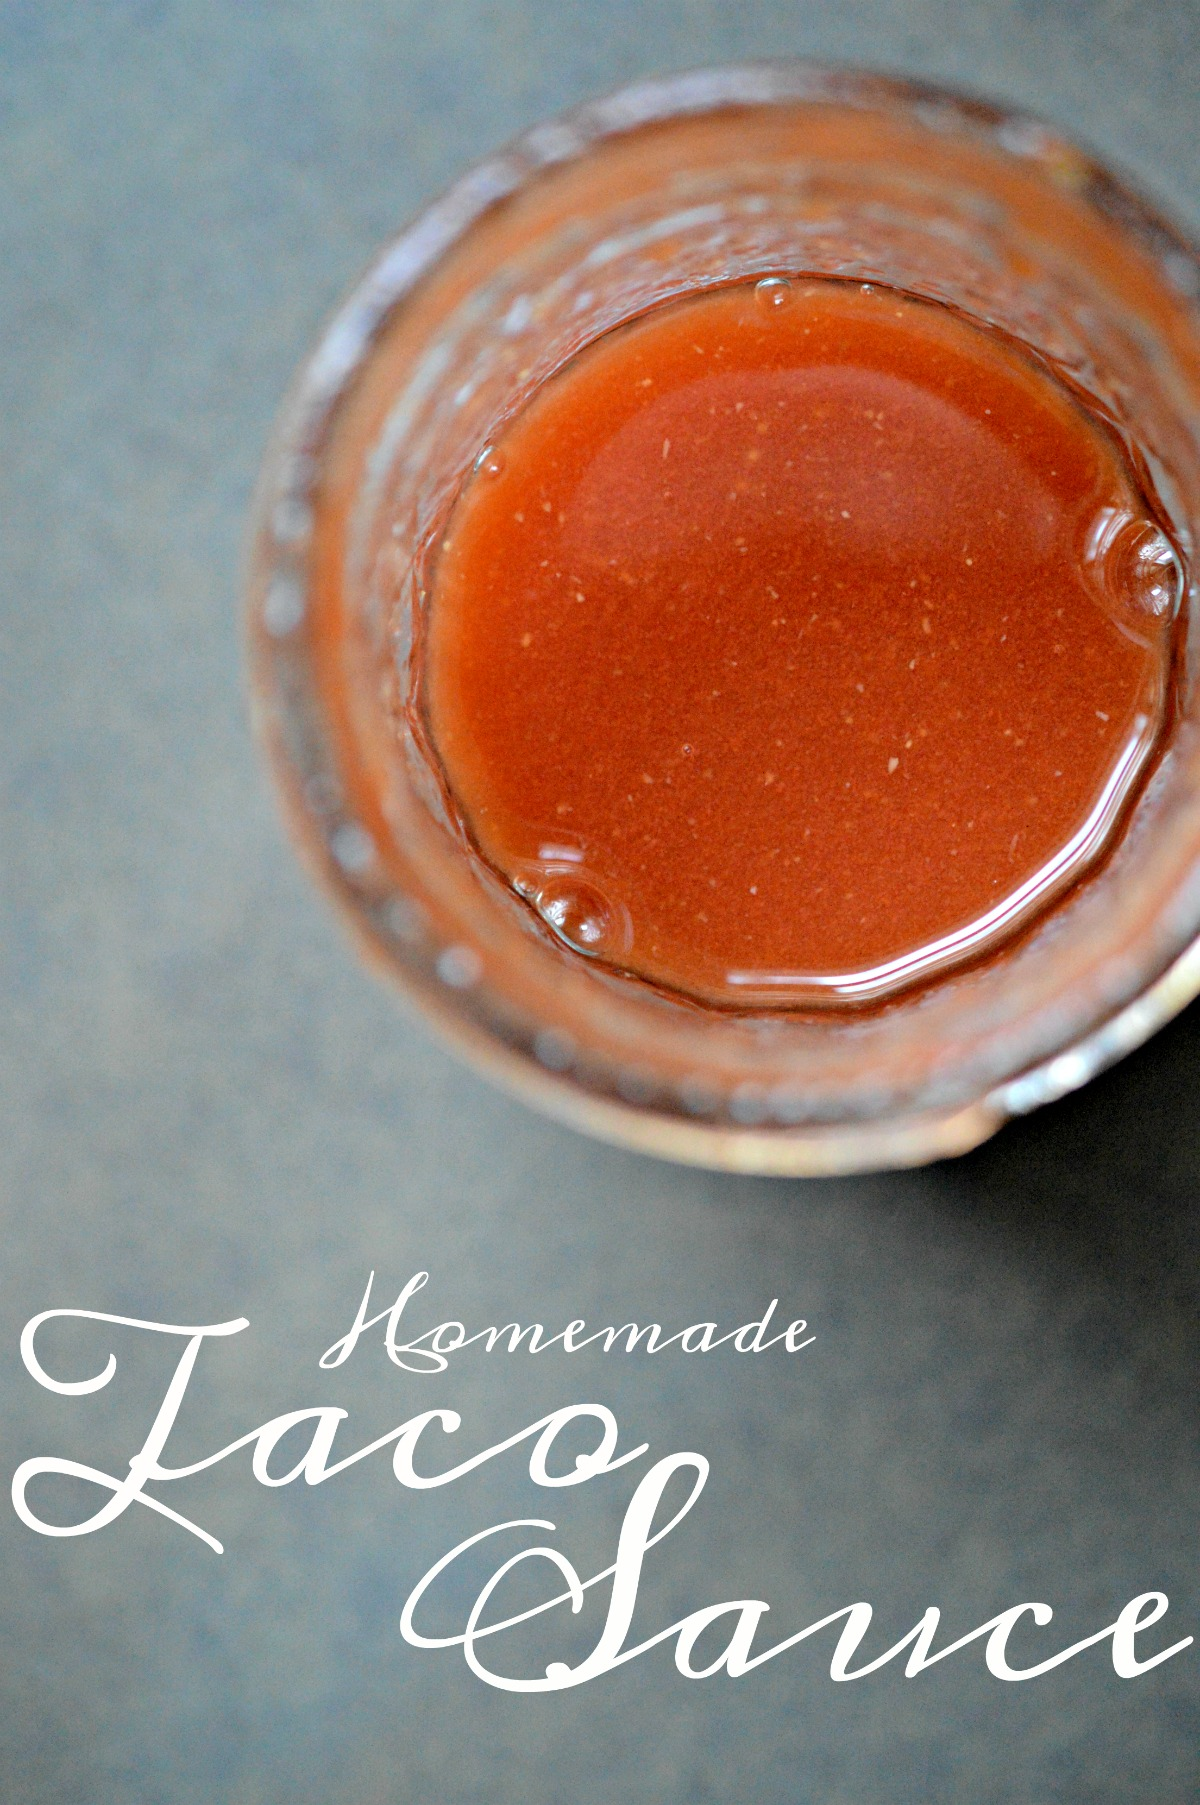 Make and can your own homemade Taco Sauce with this easy recipe!